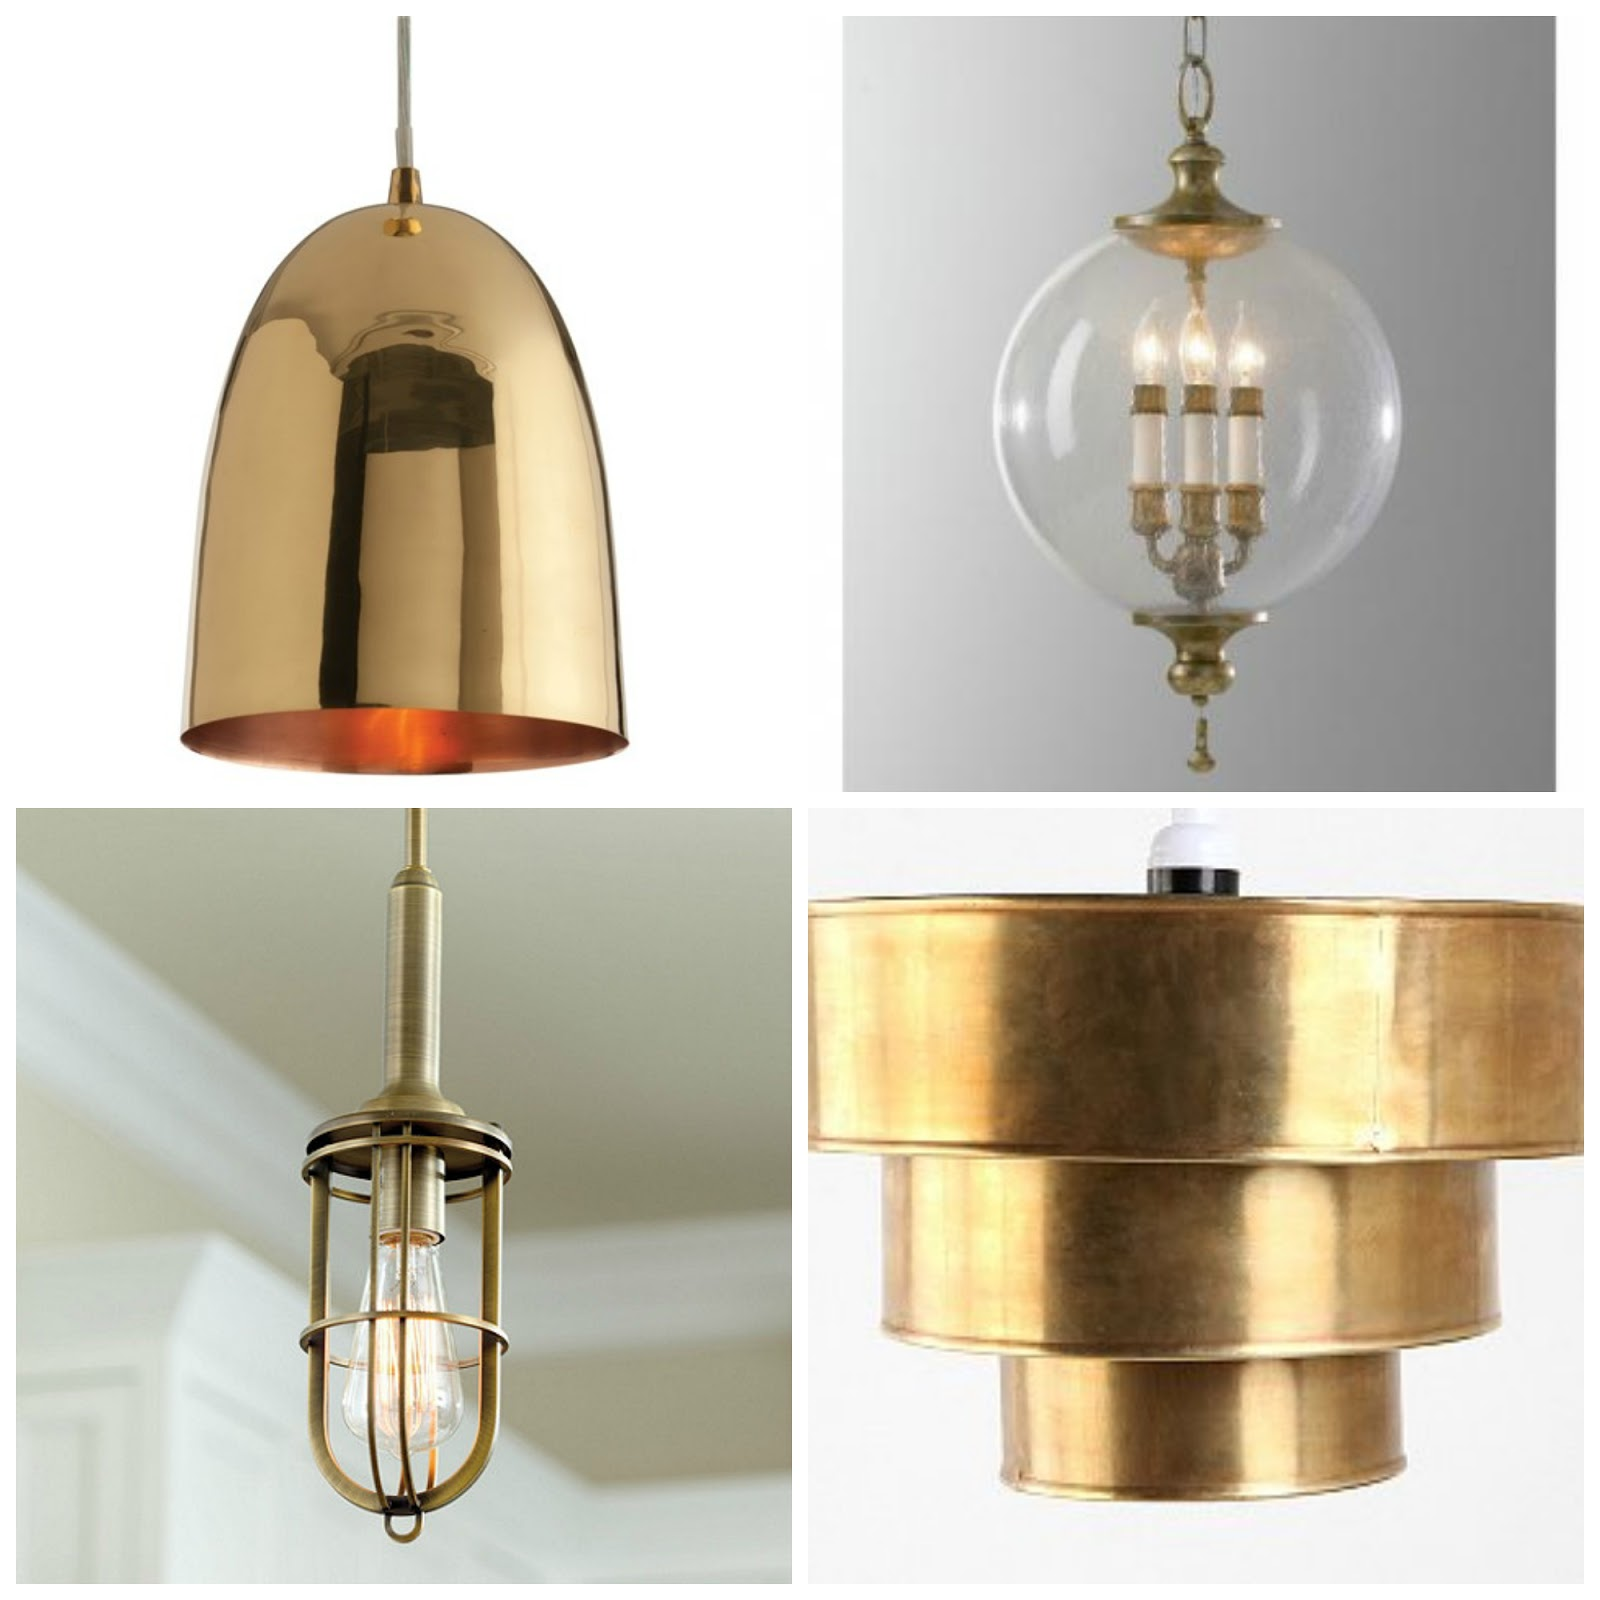 Pendant Lighting Rosa Beltran Design Brass Pendant Ceiling Light Round Up